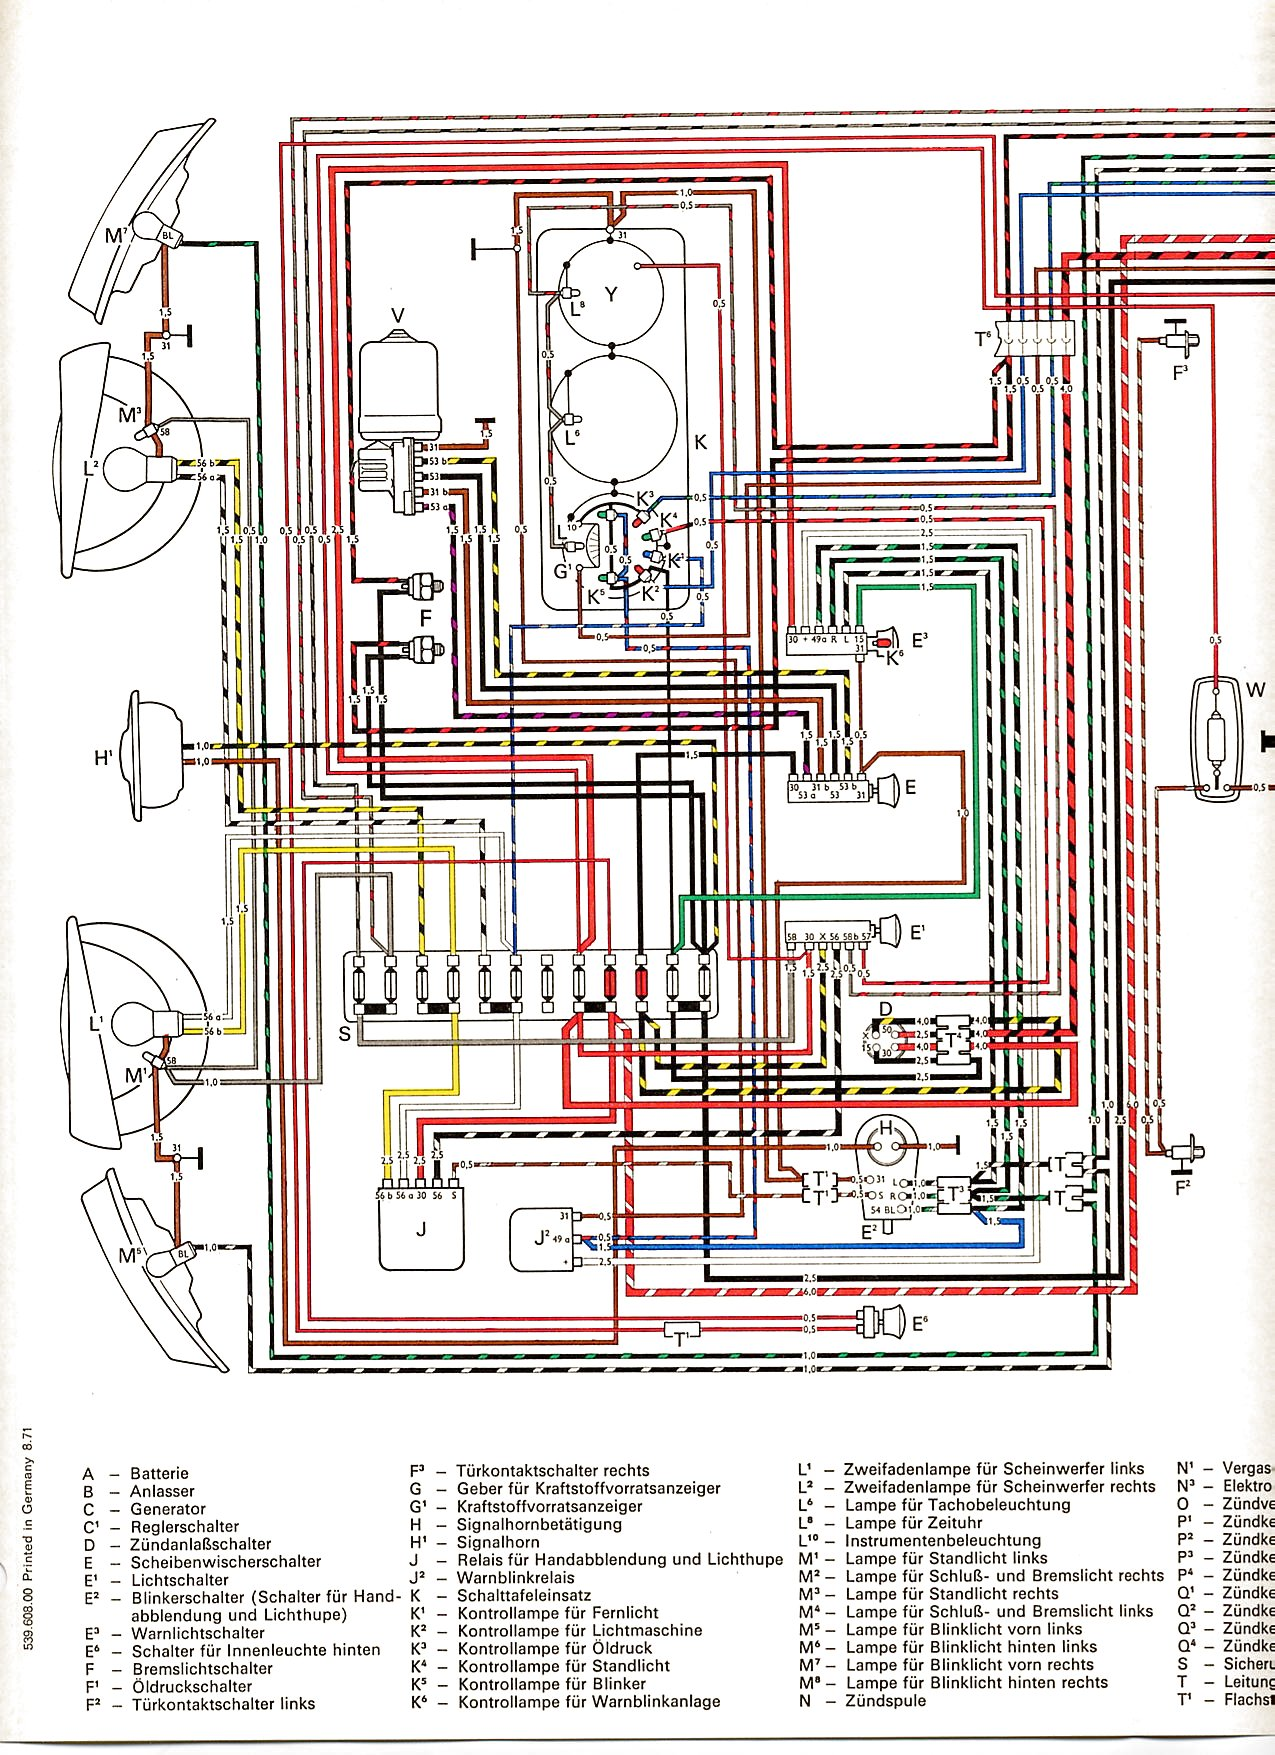 1971 Vw Transporter Wiring Diagram